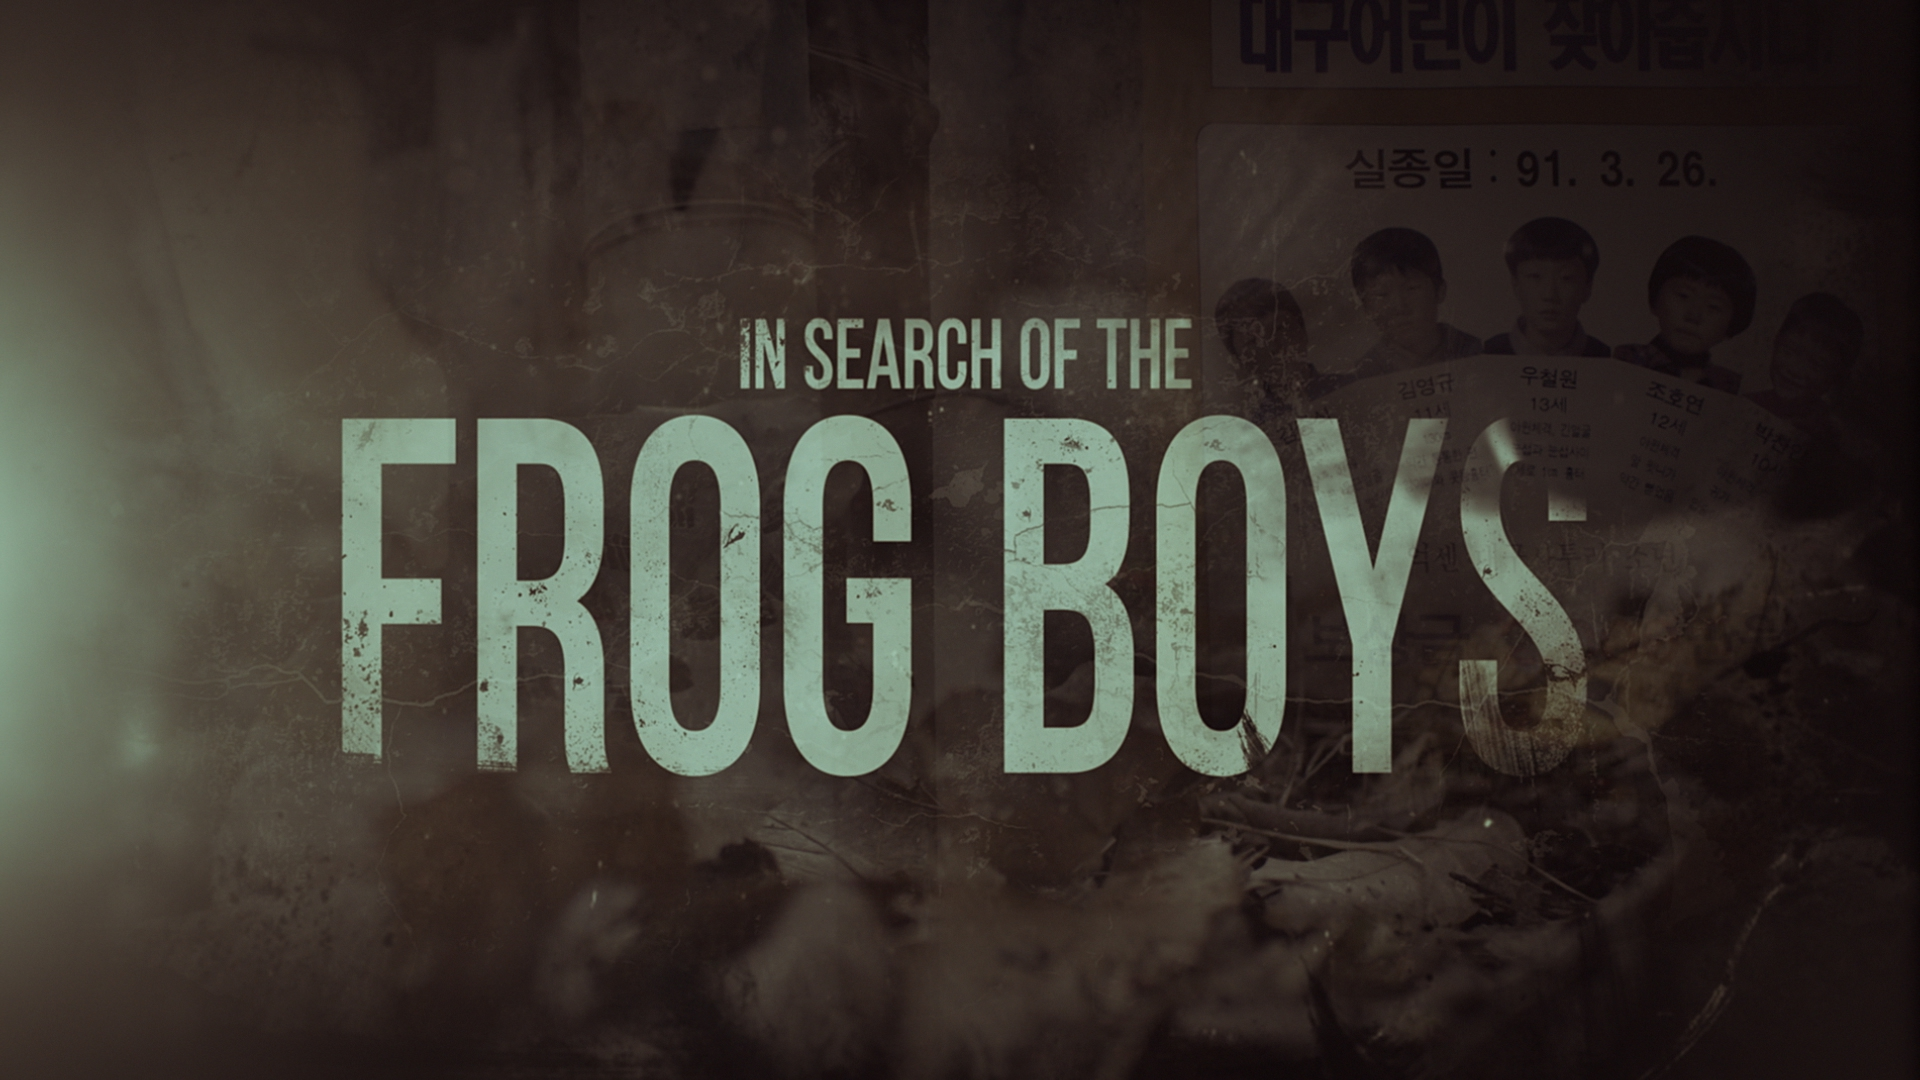 In Search of the Frog Boys